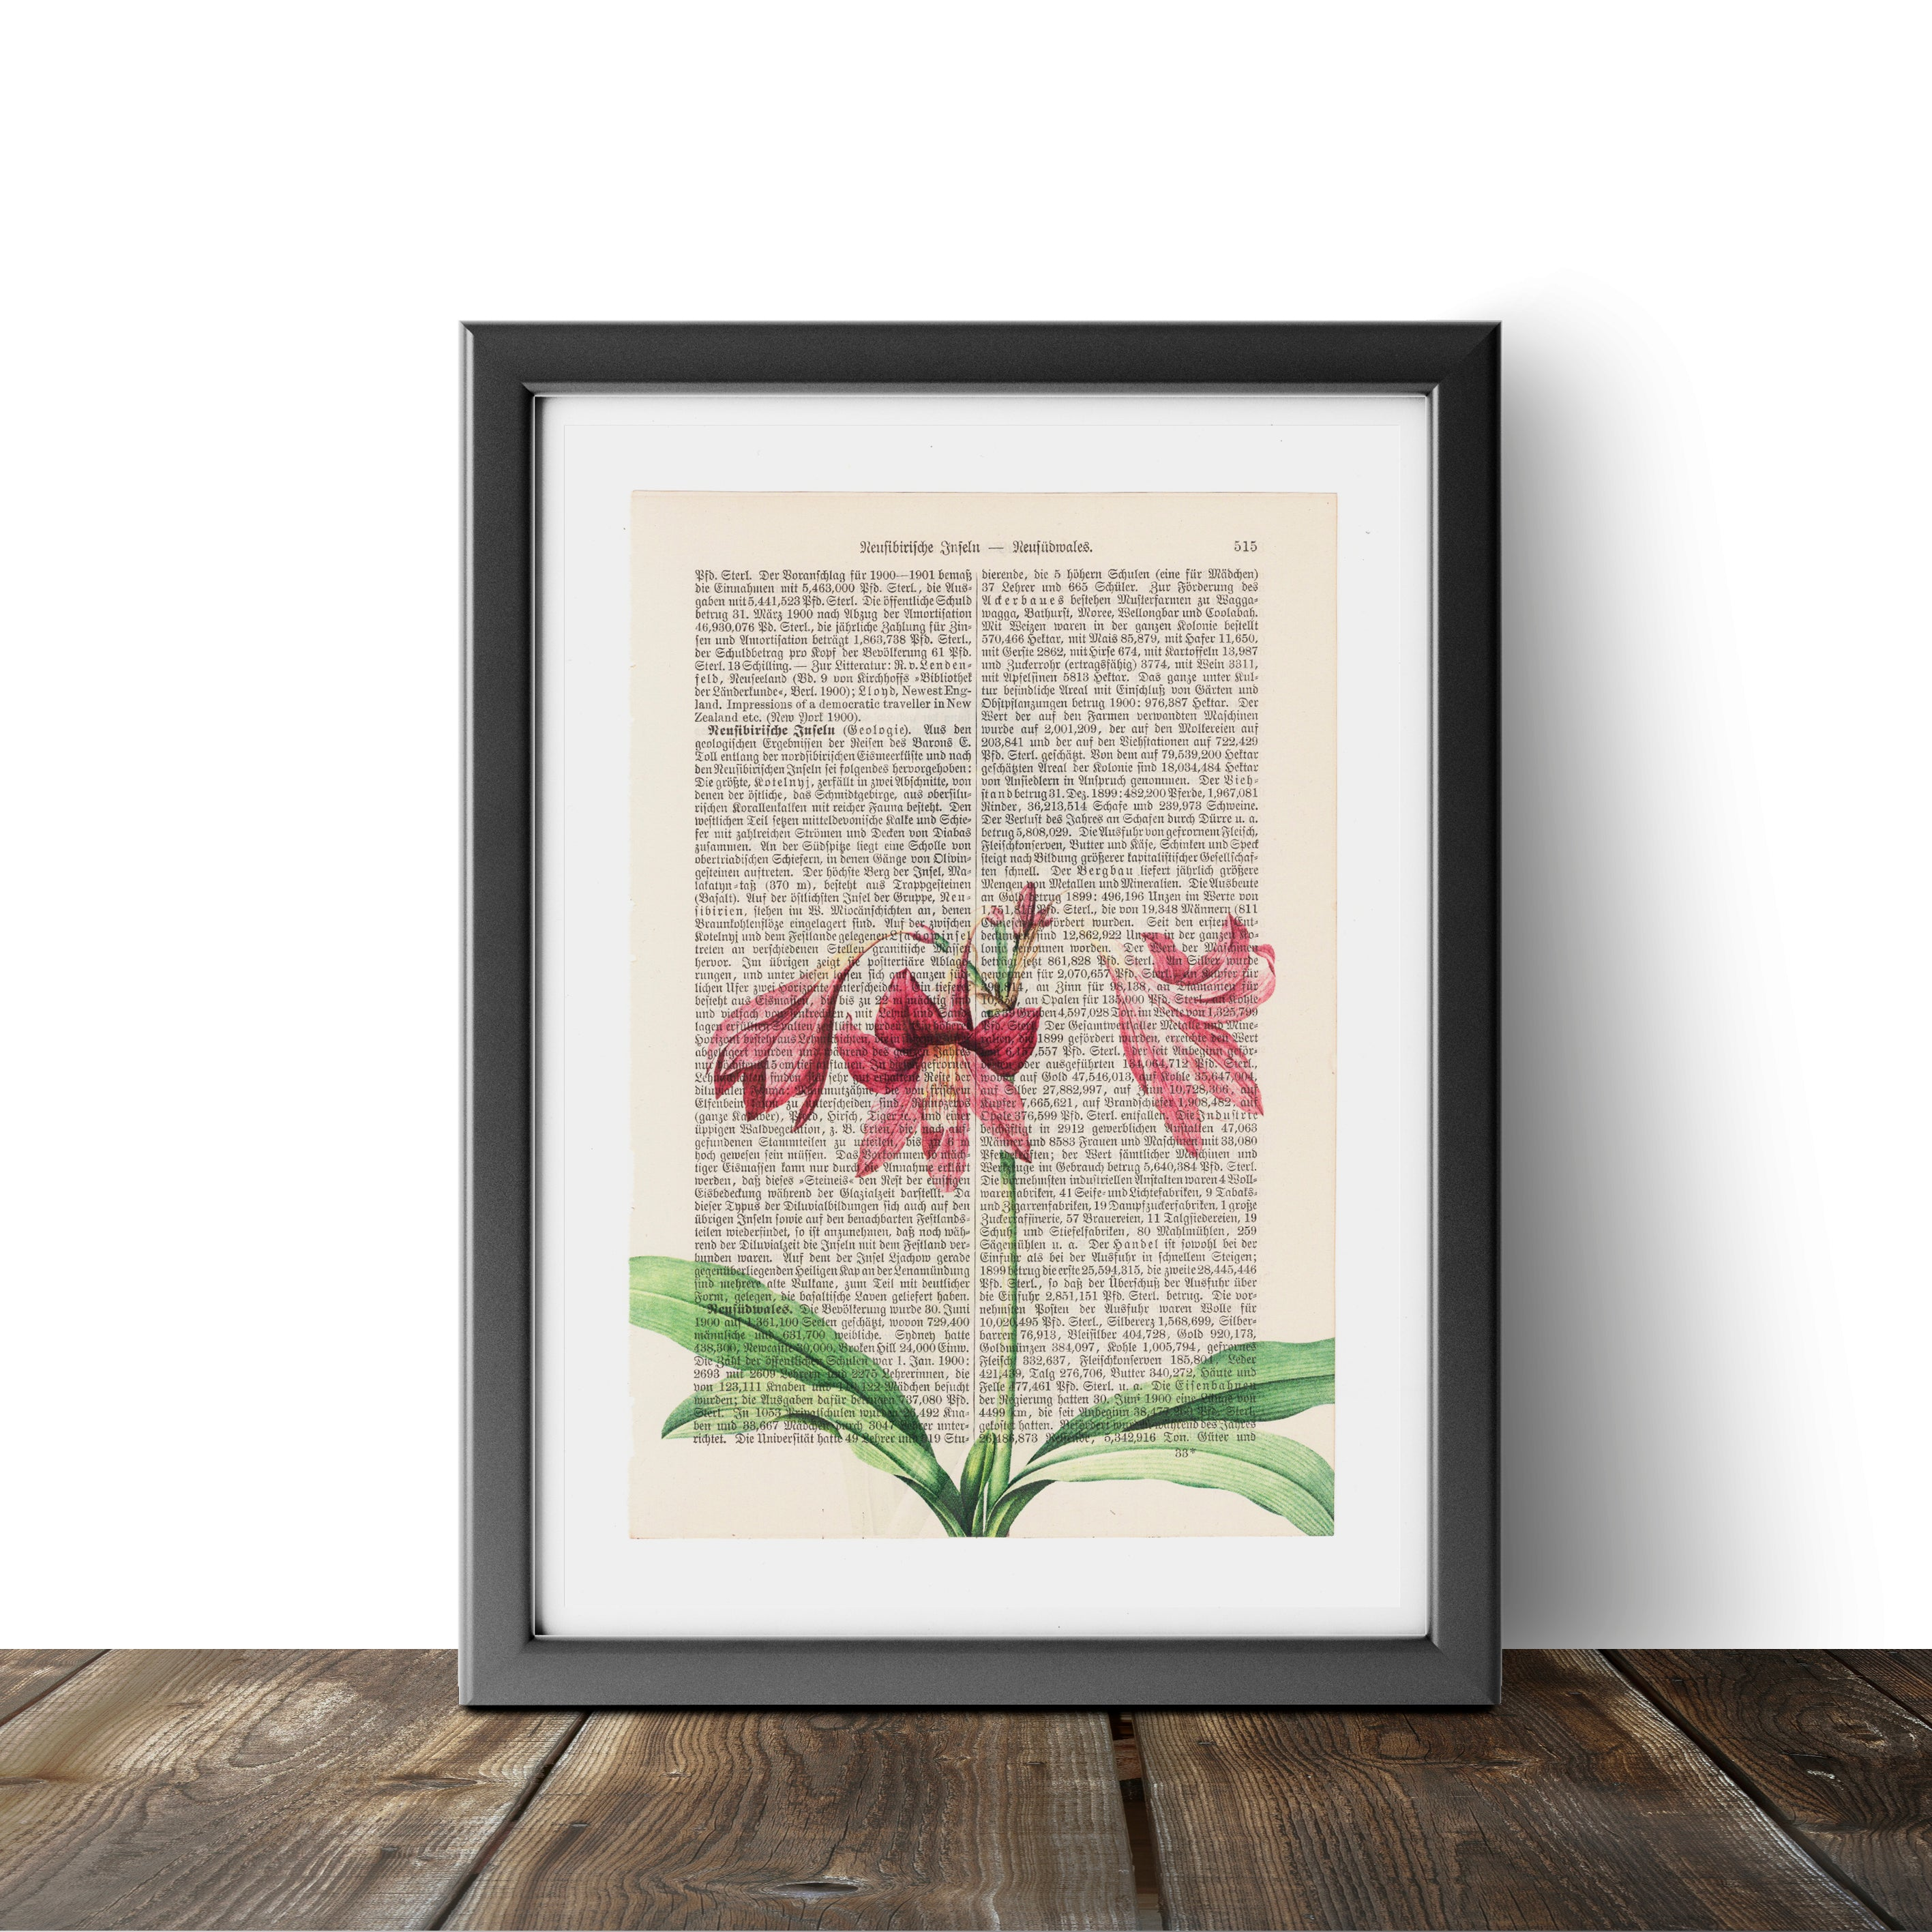 Amaryllis - Flower - Art on Words